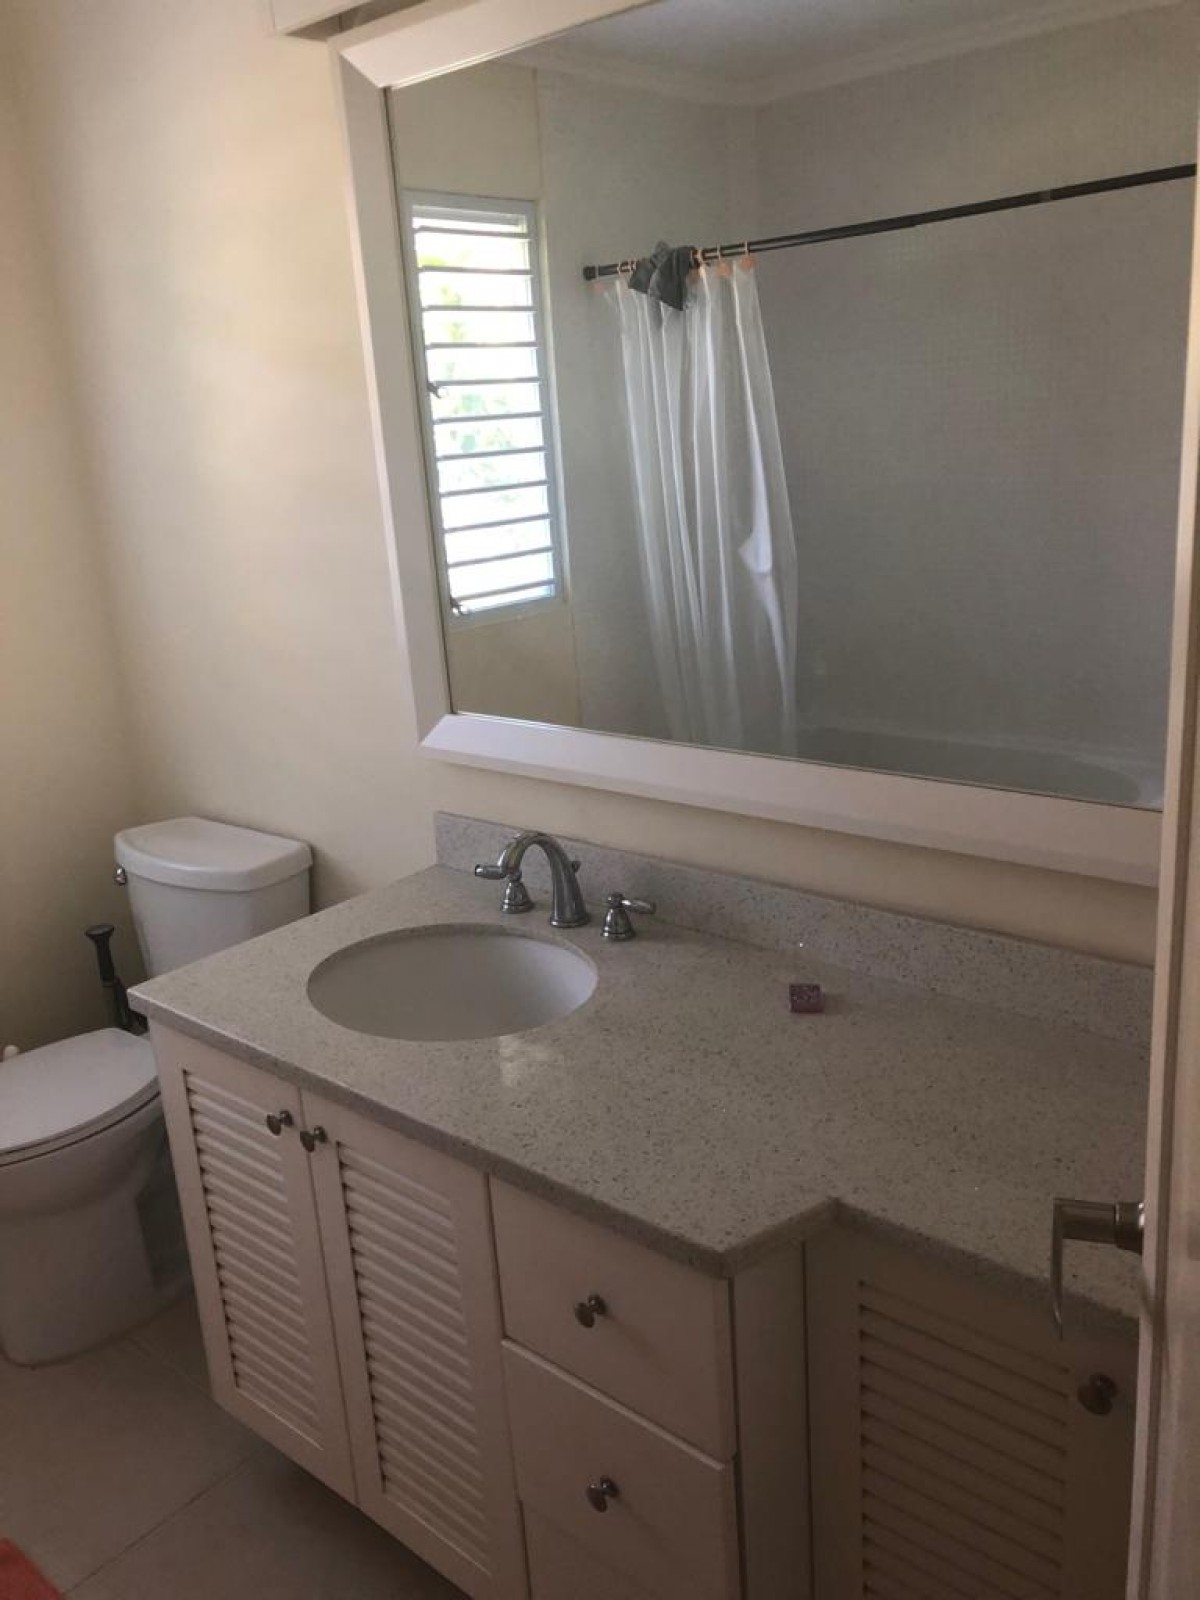 3 Bedroom 2 Bathroom House For Rent In Richmond In Richmond